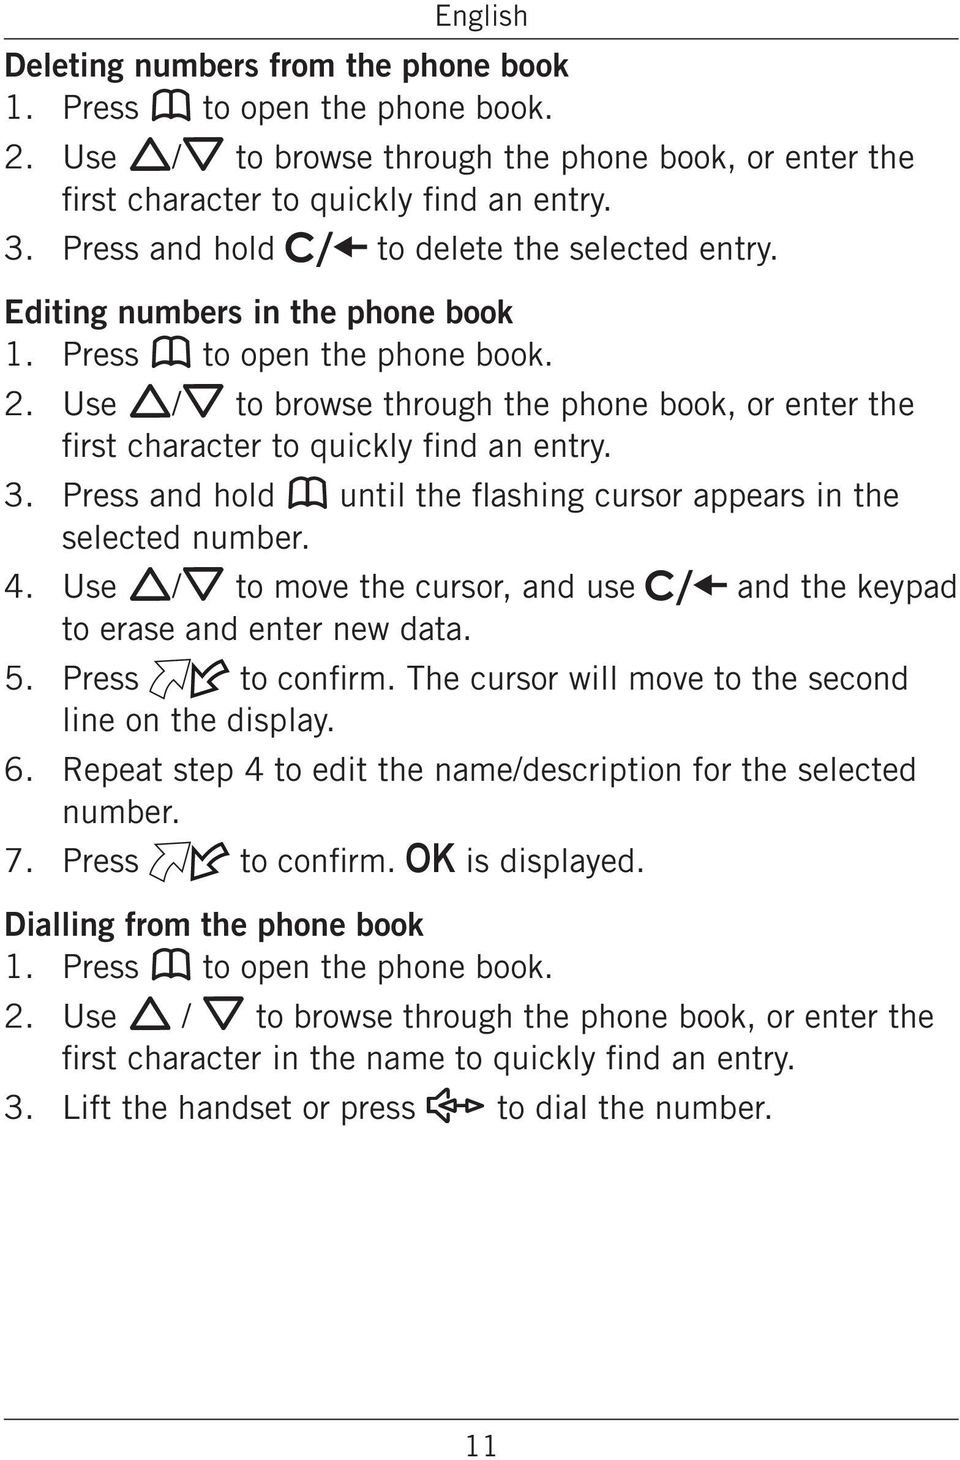 entry Press and hold b until the flashing cursor appears in the selected number Use v V to move the cursor, and use to erase and enter new data and the keypad Press to confirm The cursor will move to